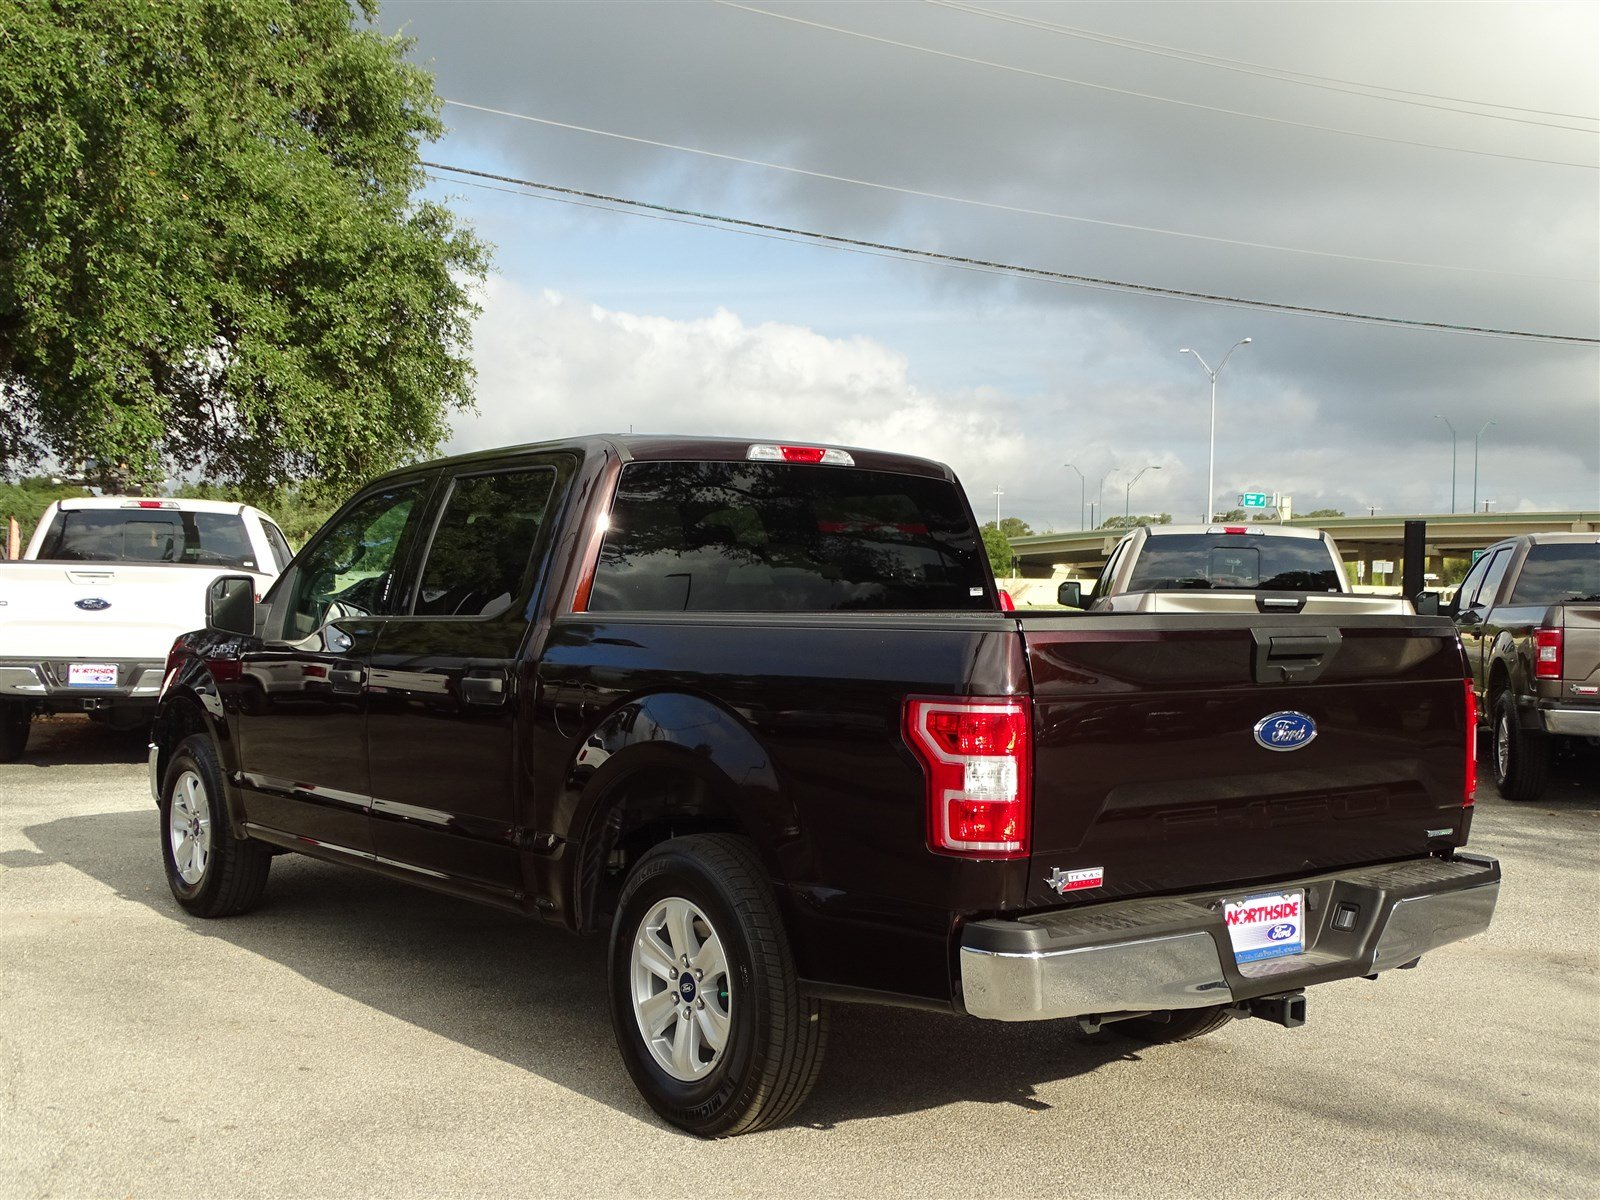 425655562353450e7d86f63baf6ce938 new 2018 ford f 150 xlt crew cab pickup in san antonio a05547  at readyjetset.co